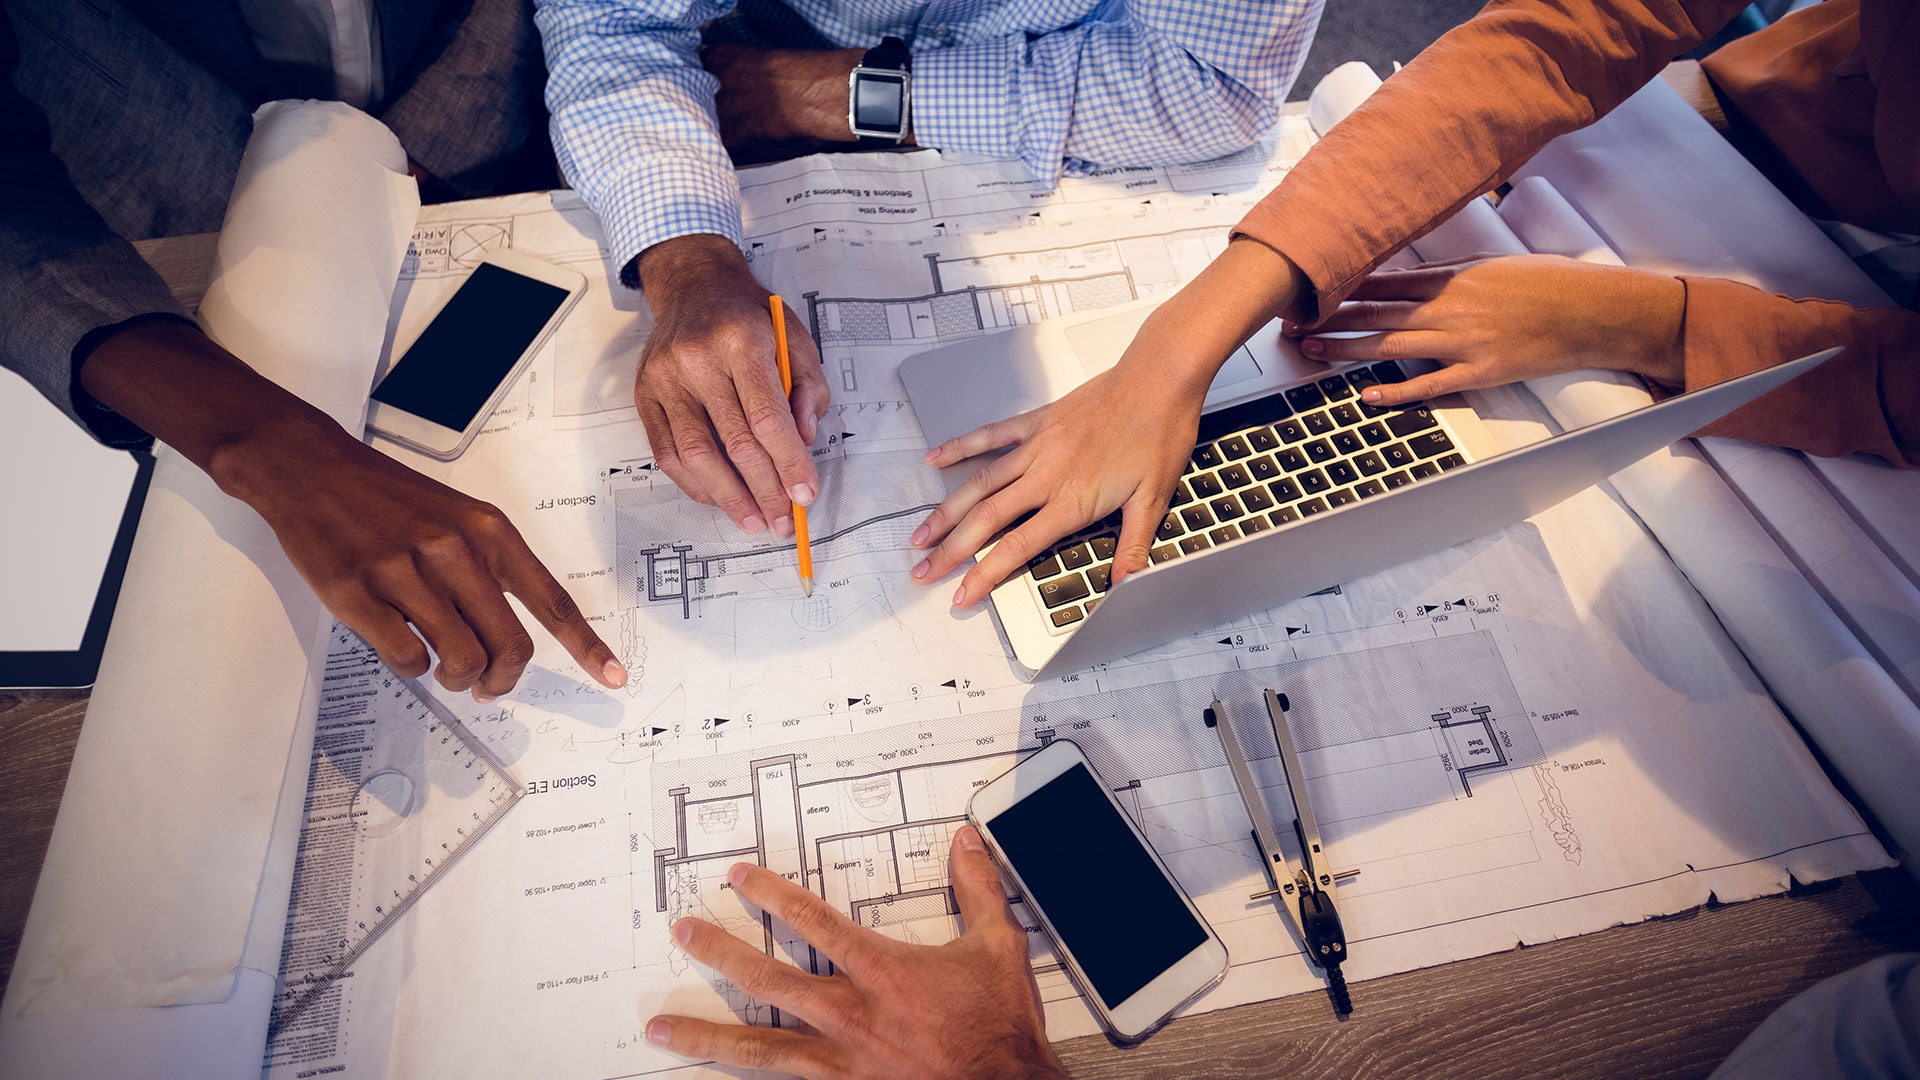 We have never worked with an Architect before; how do we get started?